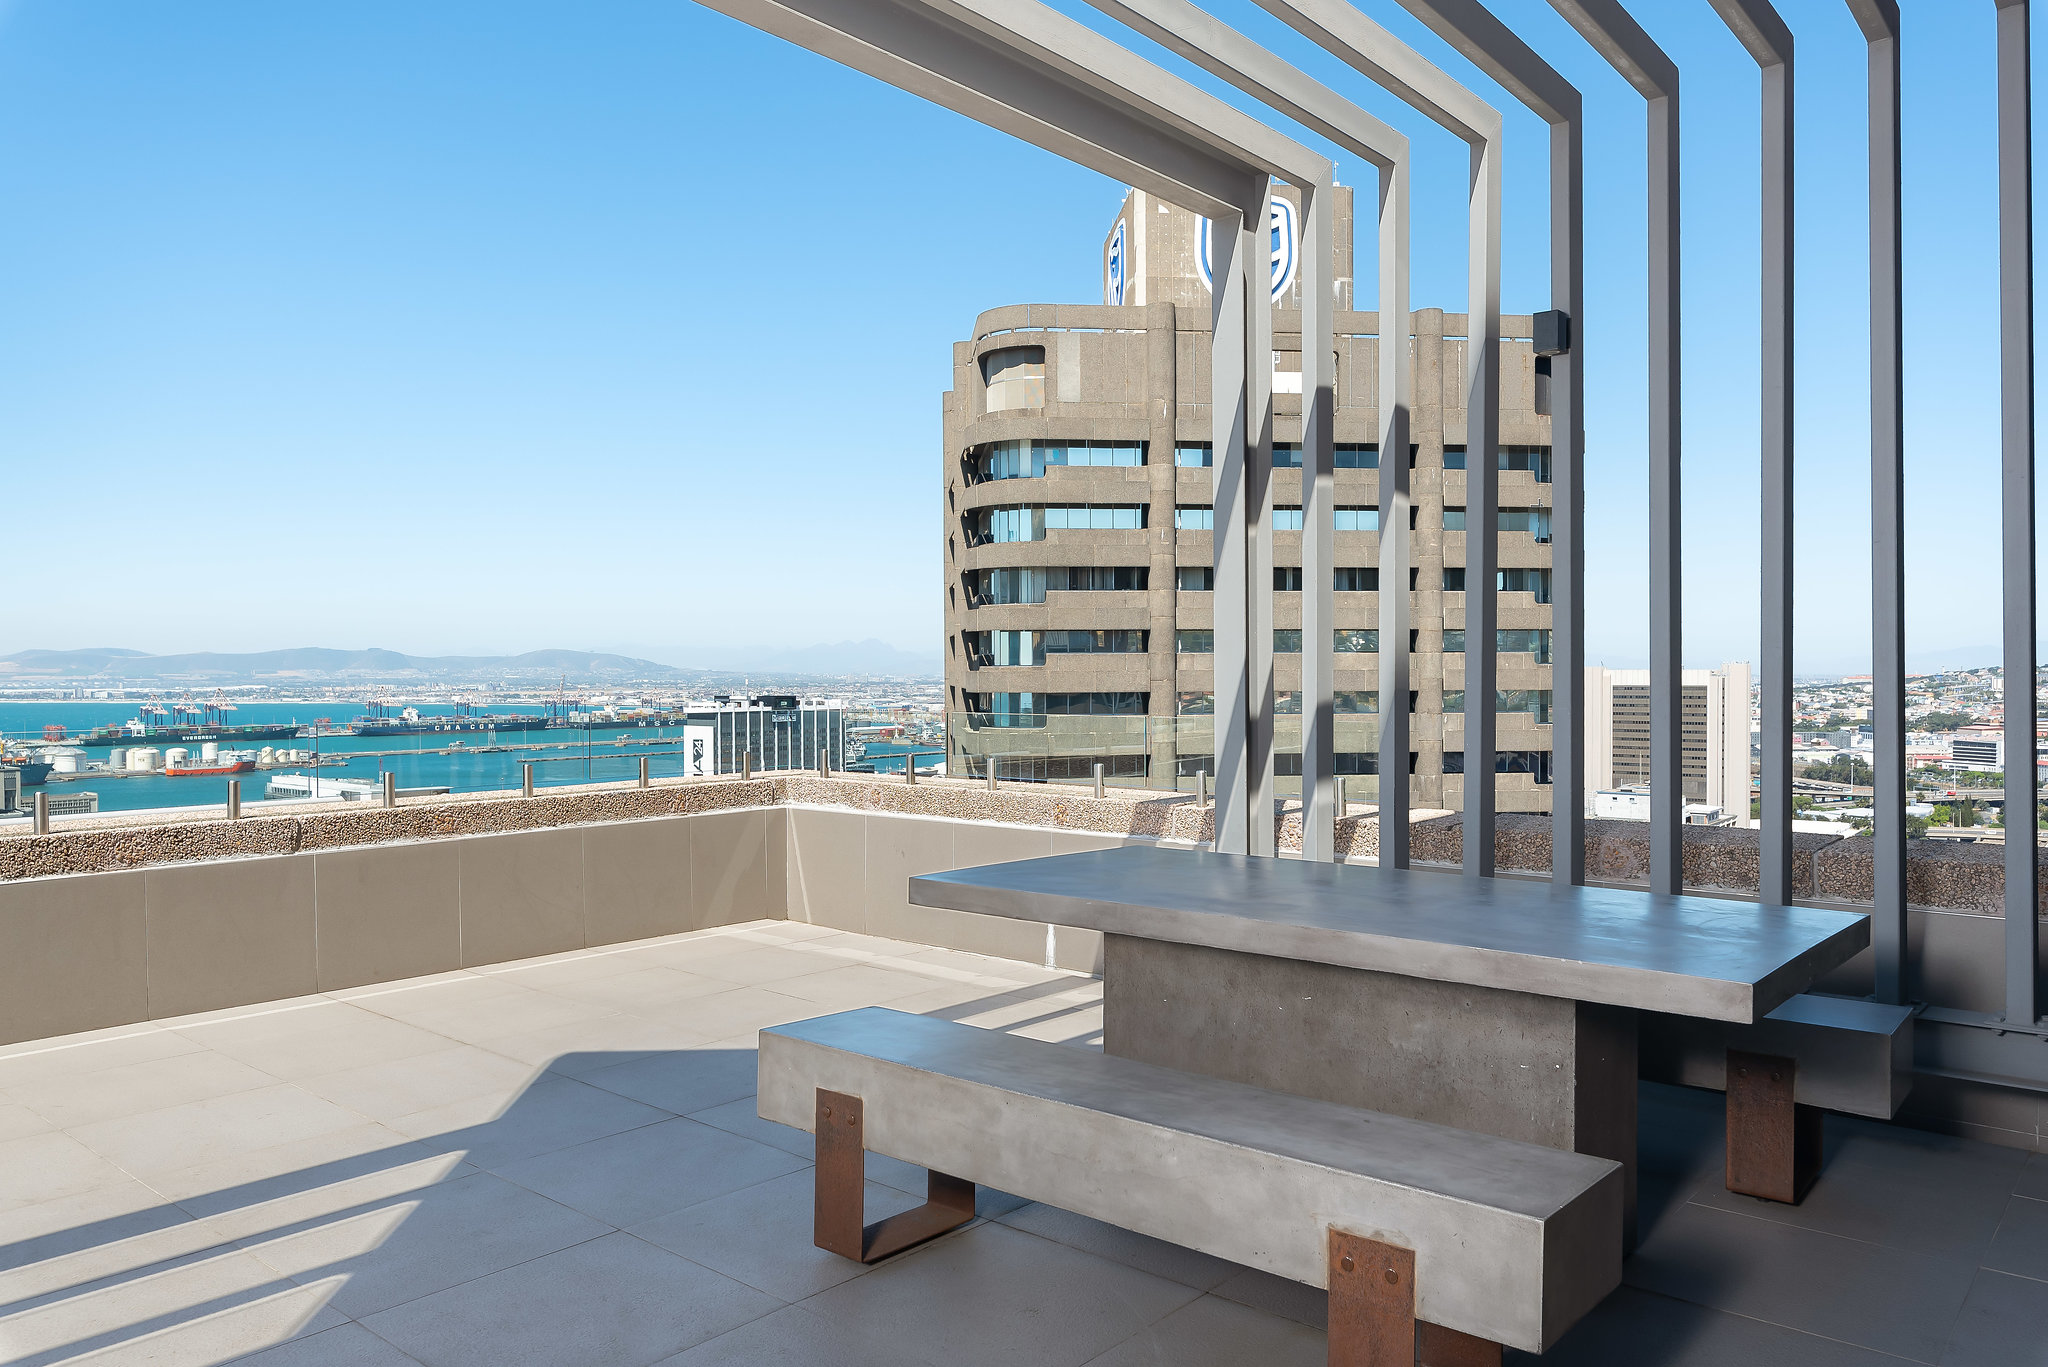 CapeTownCBDPenthouseApartmentForSale-2302RadissonBlu(17of19).jpg